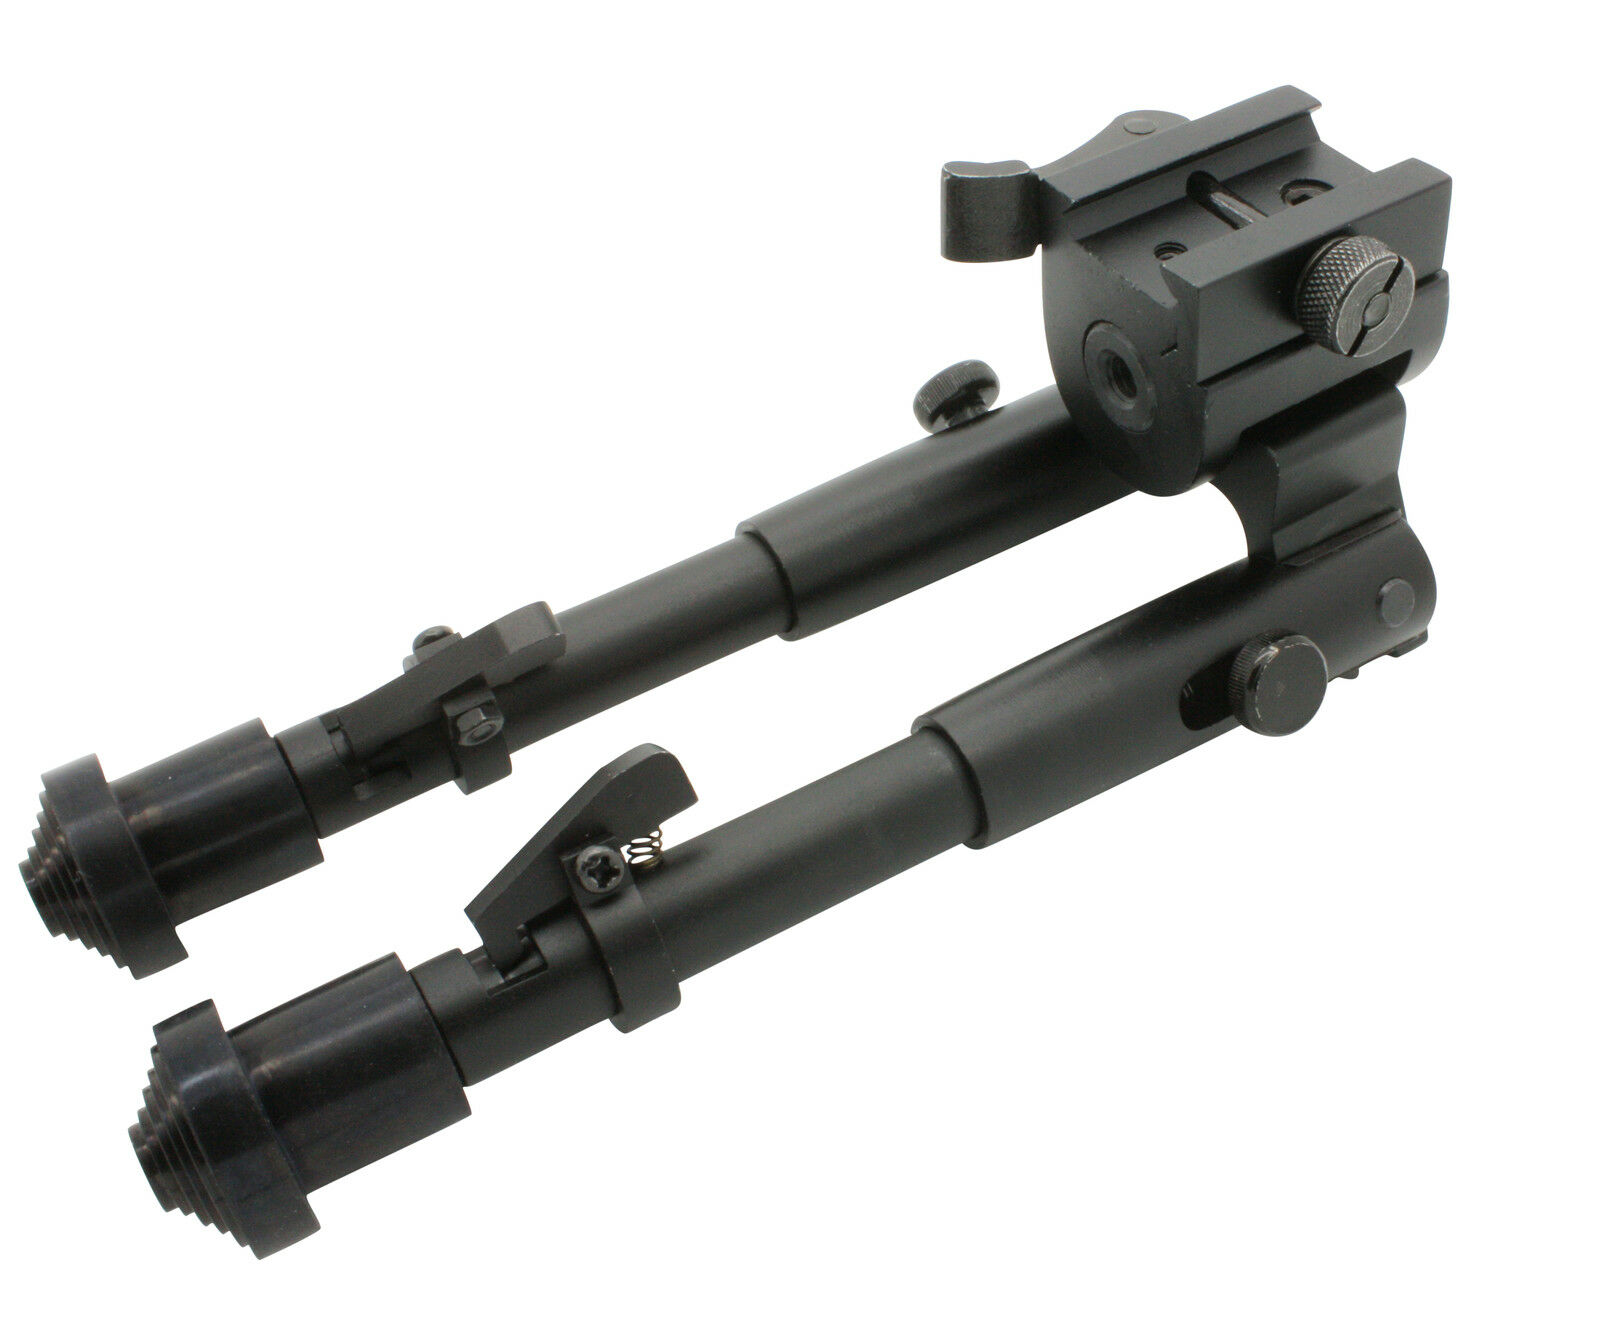 Tactical Rifle Bipod Button Lock 7 5 to 9 Adjustable QD Picatinny Rail Mount | eBay